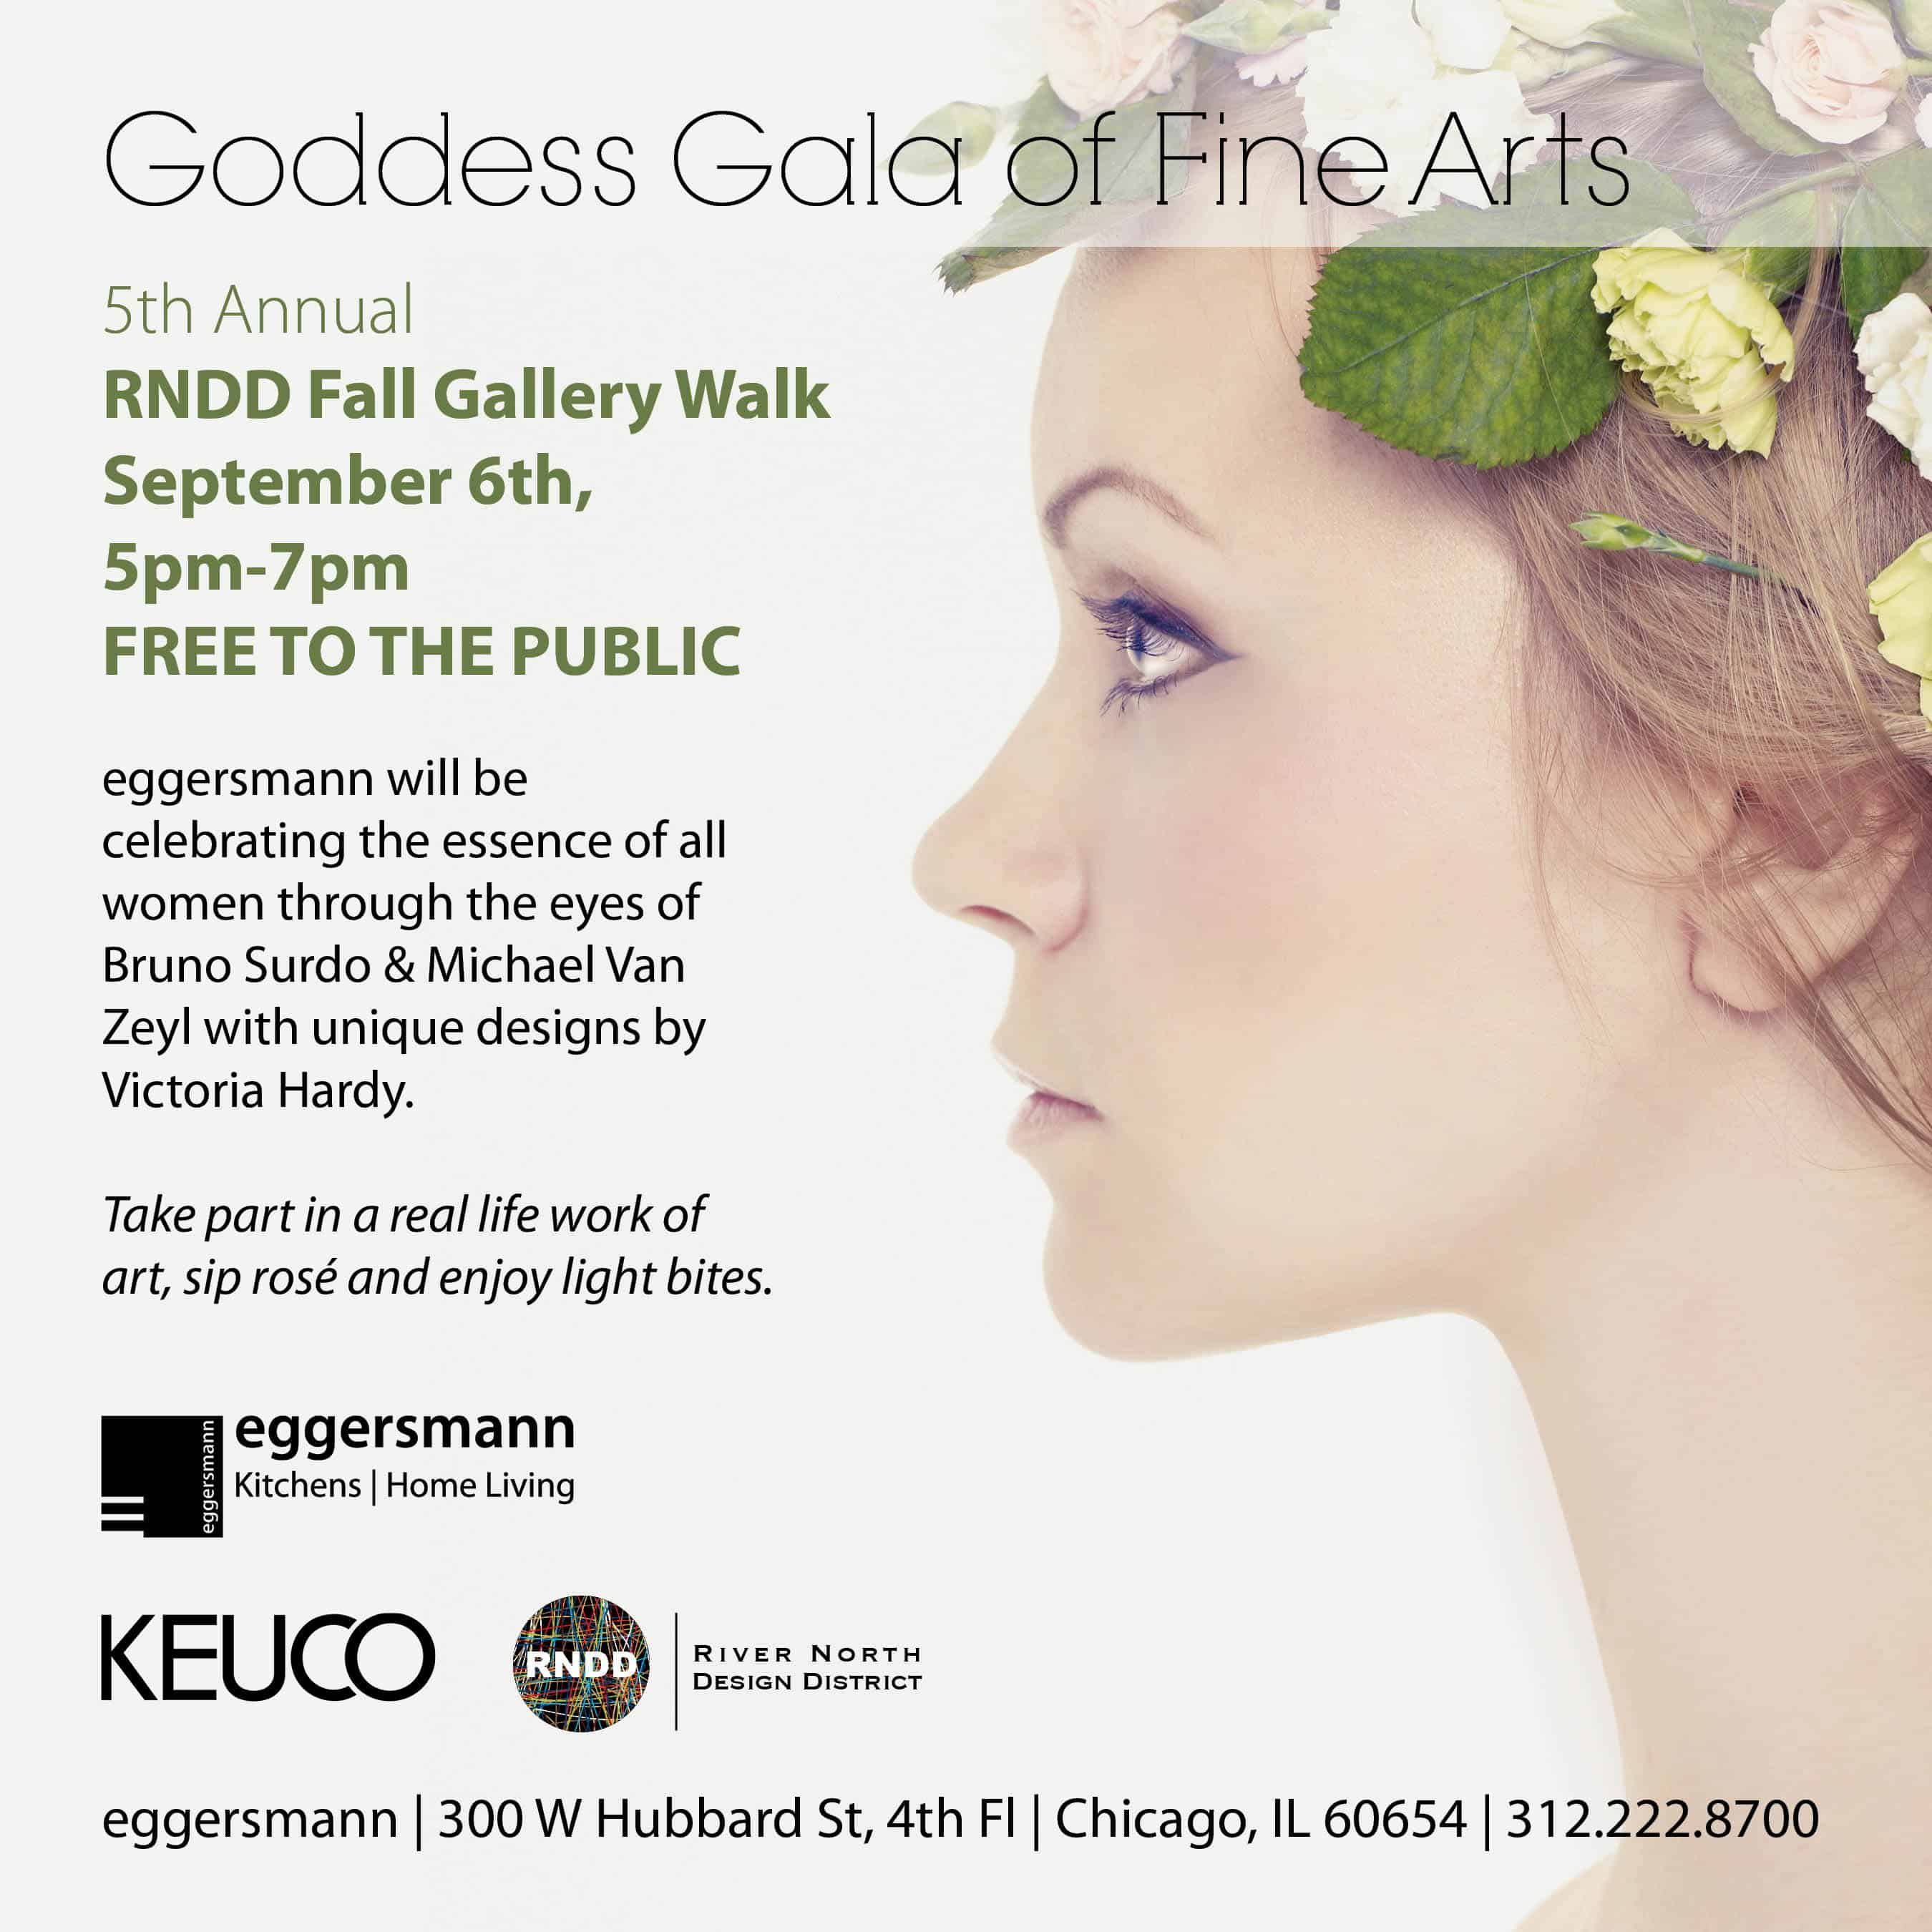 5th Annual River North Design District Fall Gallery Walk